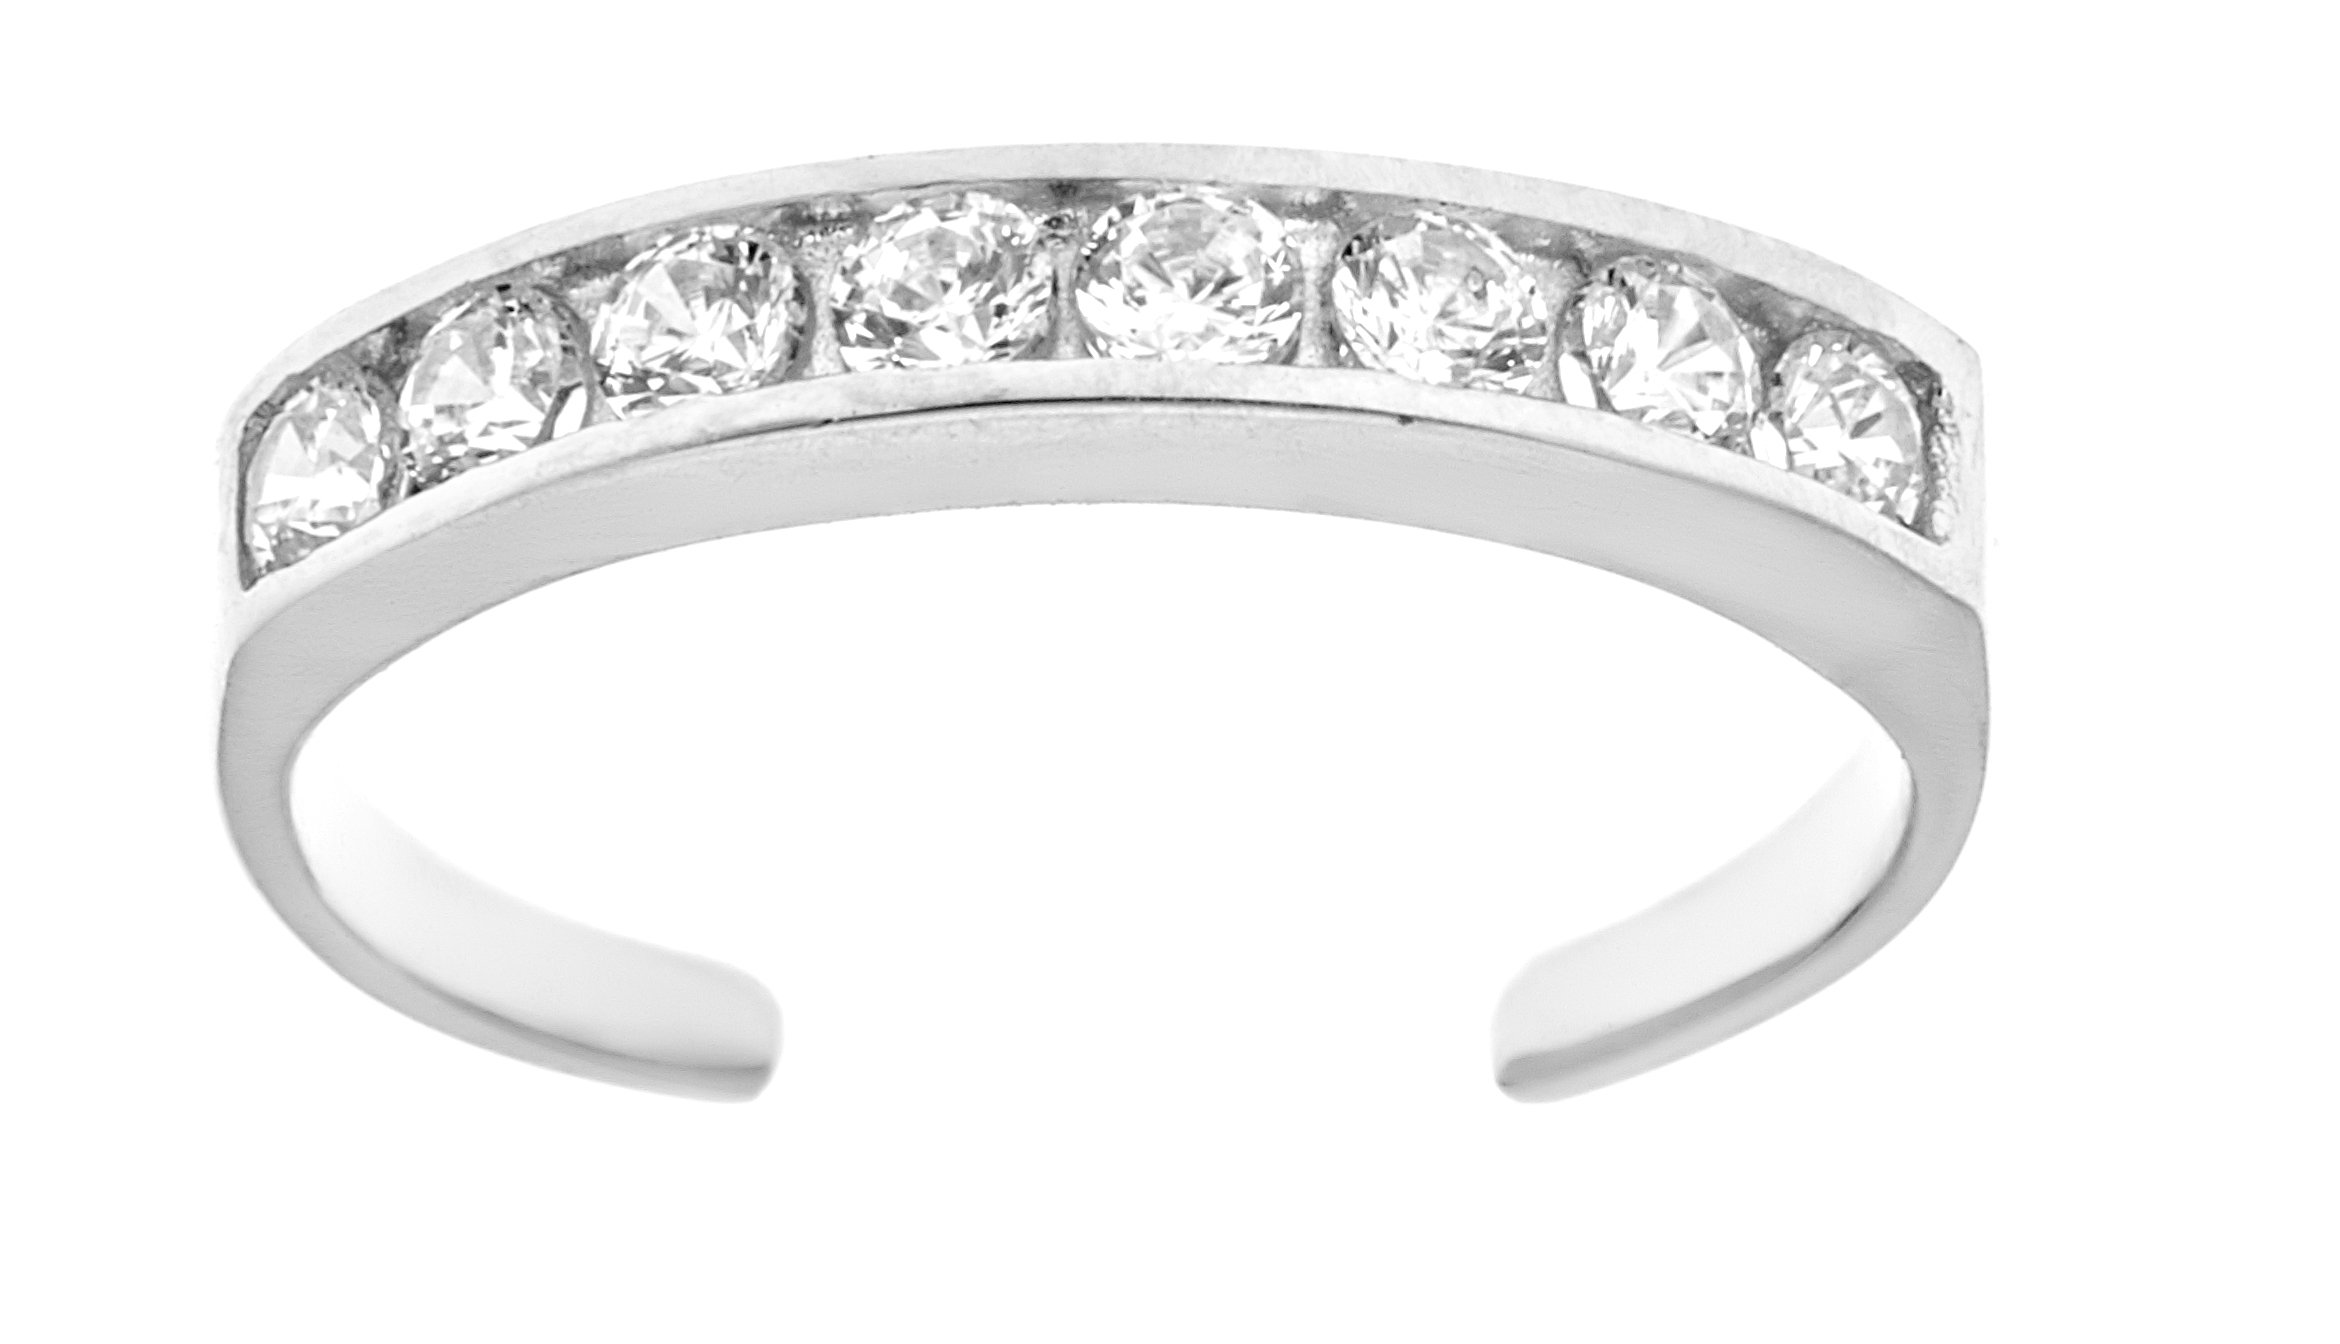 Sterling Silver Channel Set Cubic Zirconia Toe Ring Body Art Adjustable